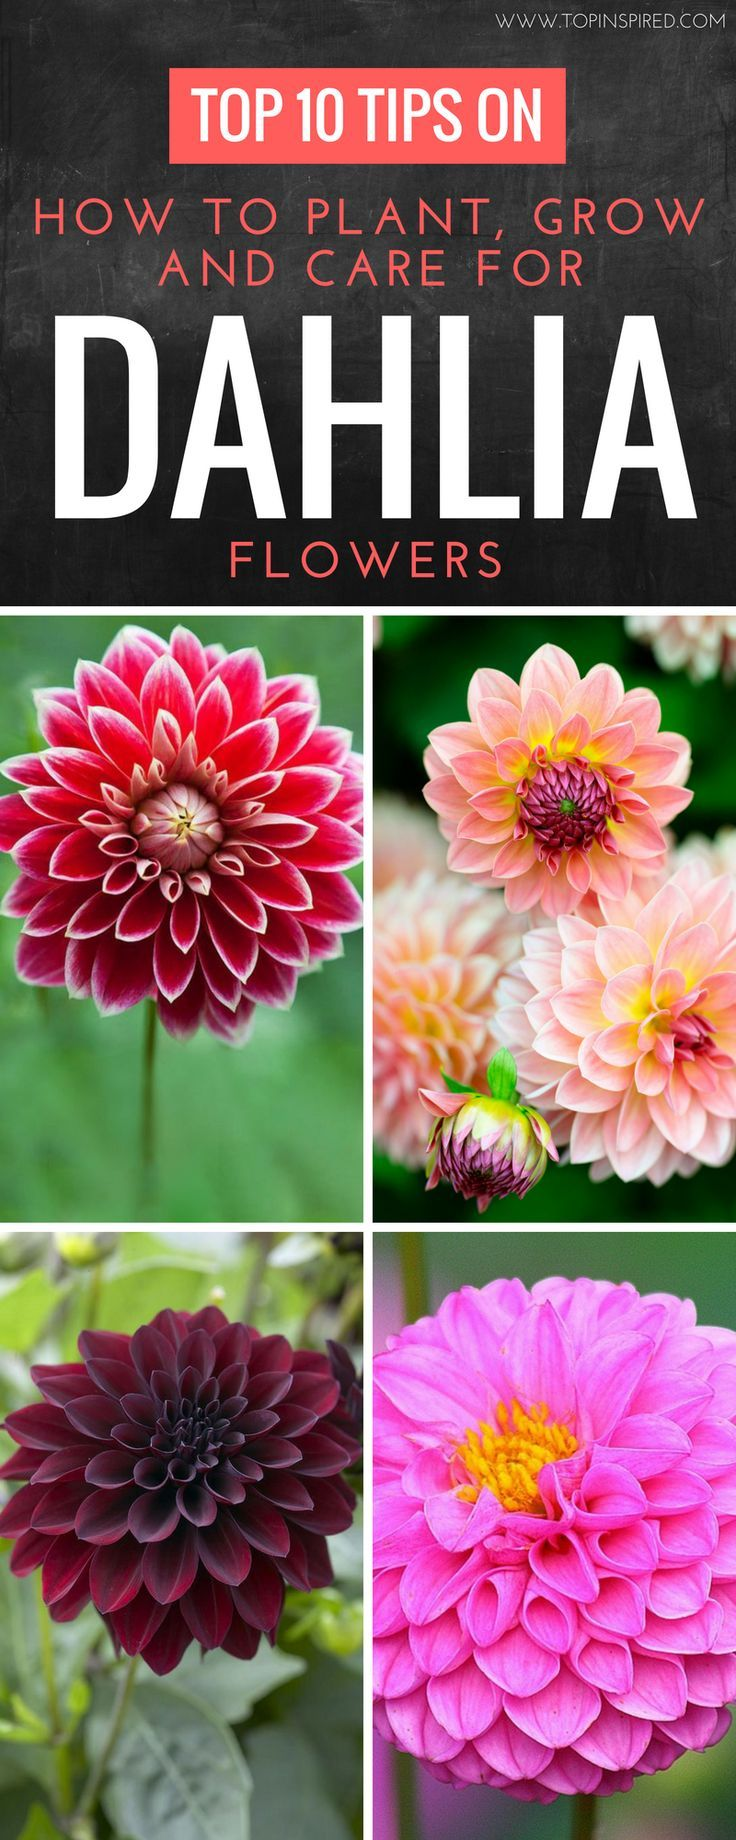 Top 10 Tips On How To Plant Grow And Care For Dahlia Flowers Top Inspired In 2020 Dahlia Flower Container Flowers Growing Dahlias